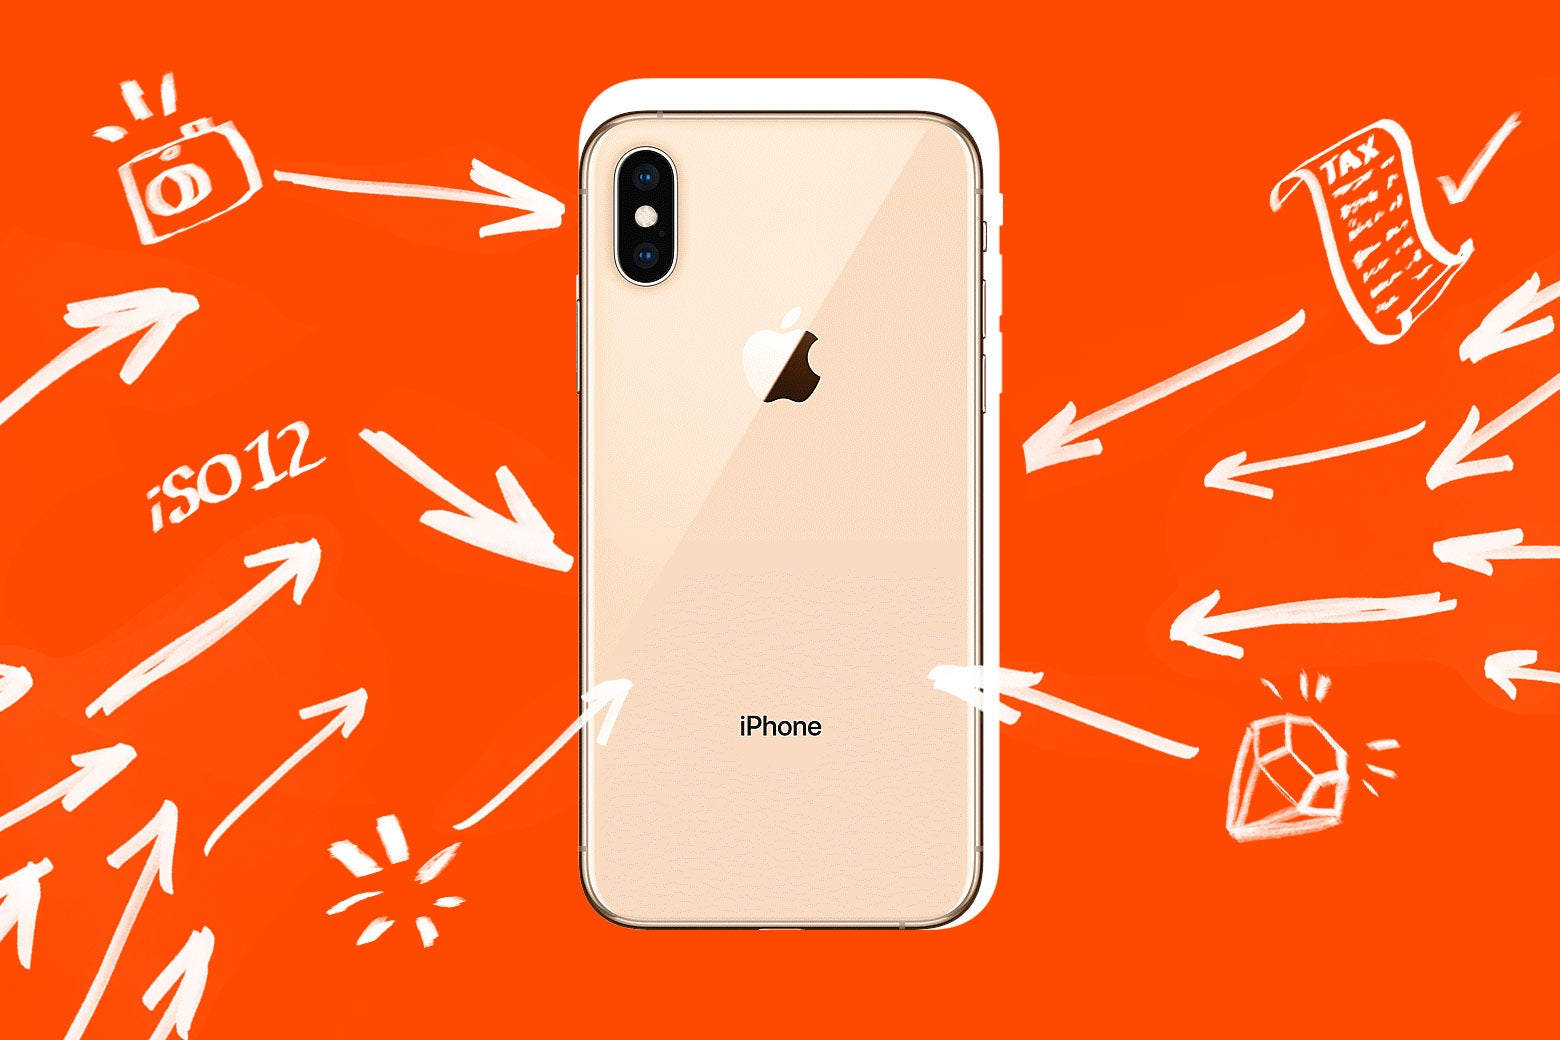 Photo illustration of an iPhone XS with arrows pointing toward and away from it.